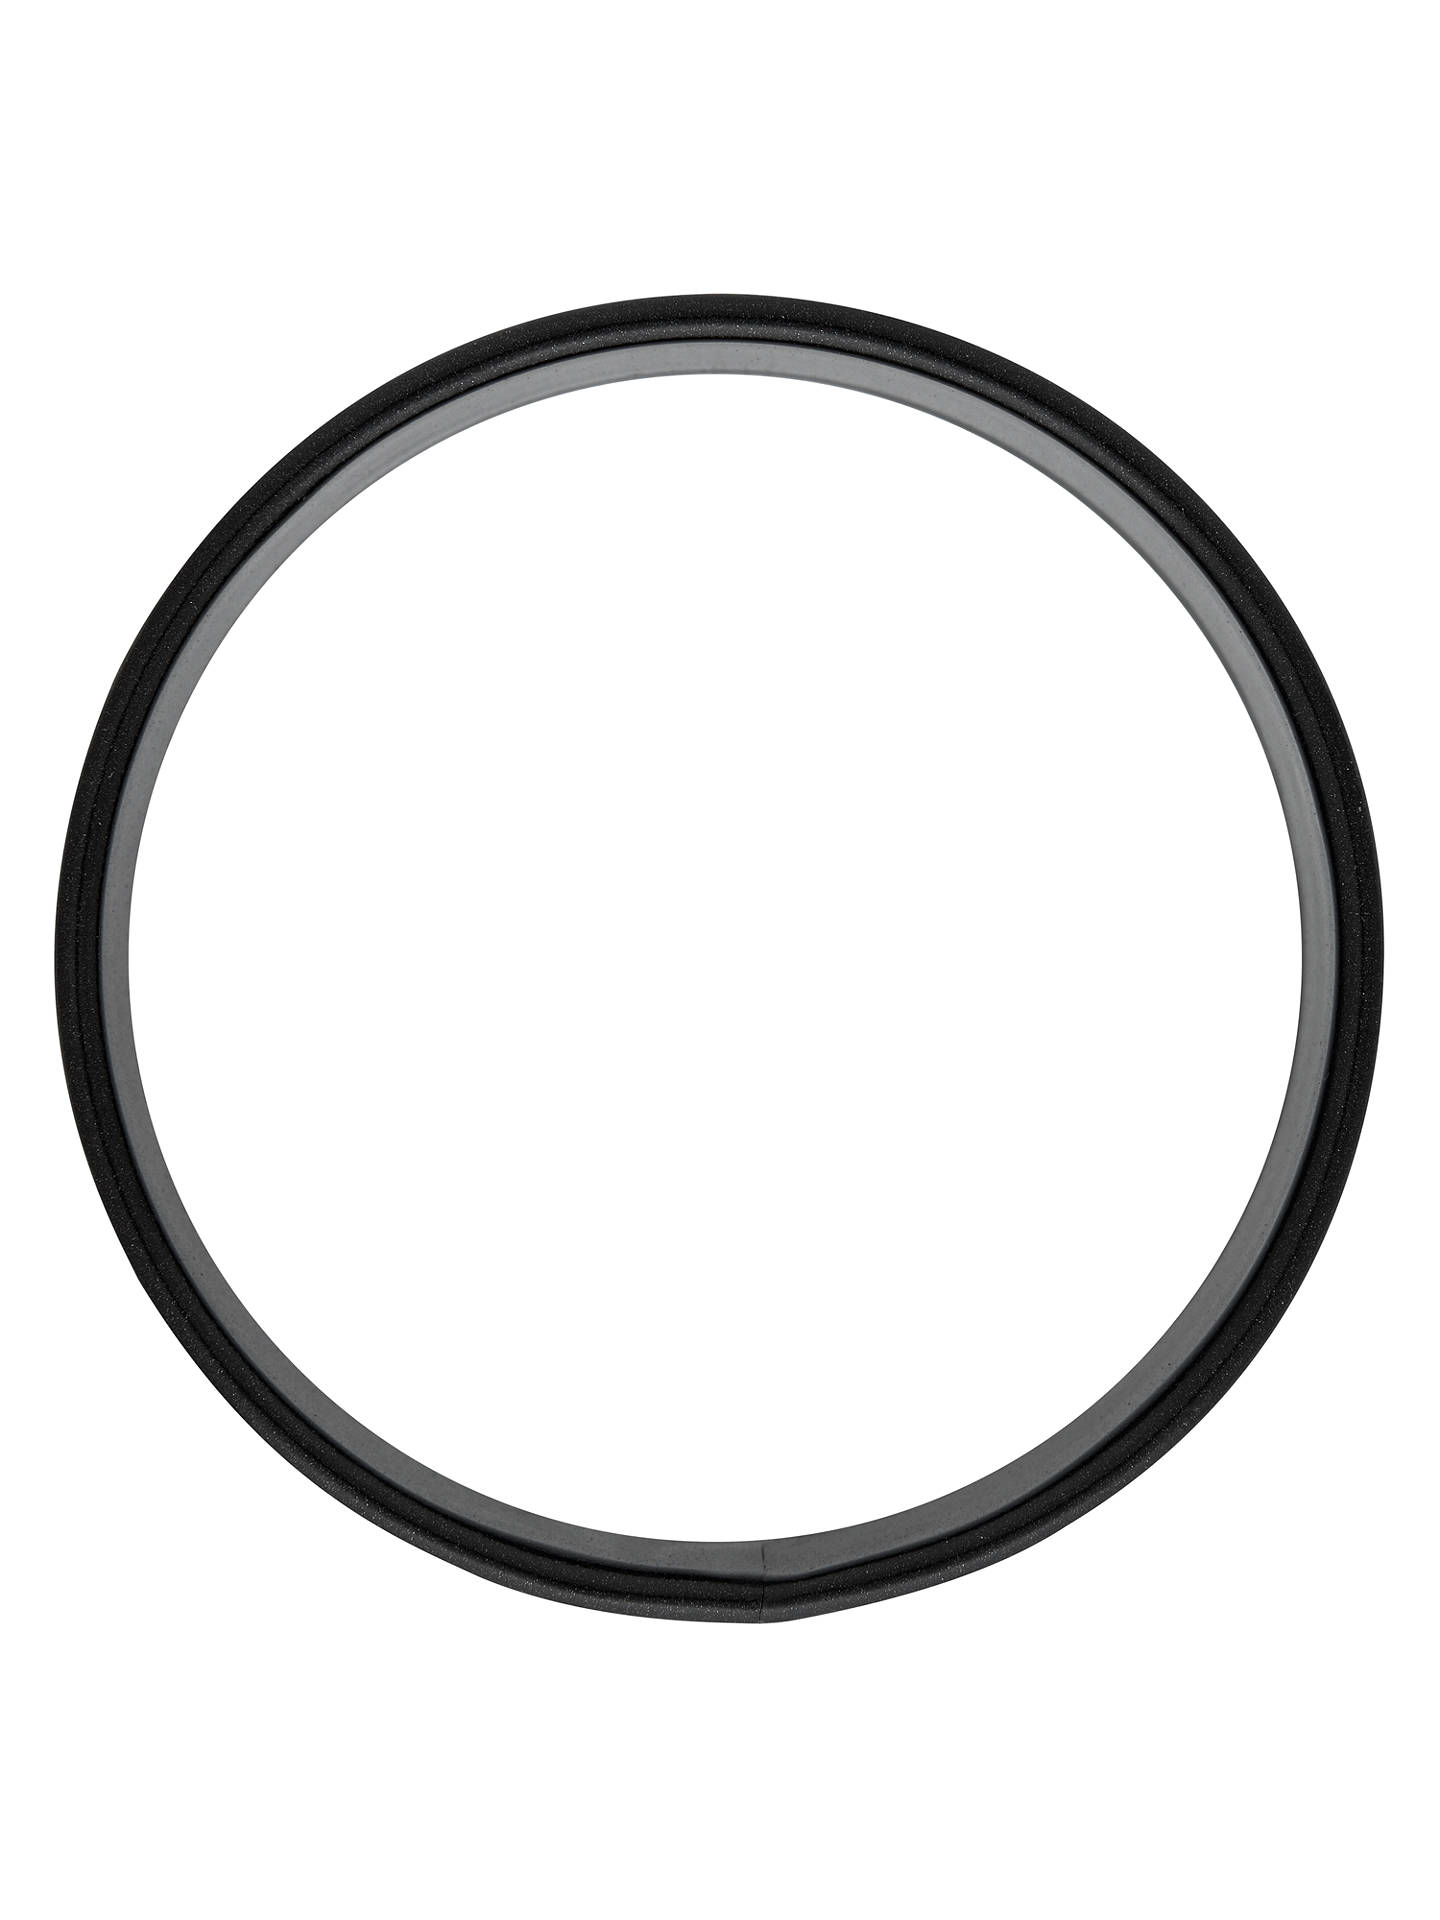 Buy John Lewis & Partners Poachette Rings, Set of 2 Online at johnlewis.com